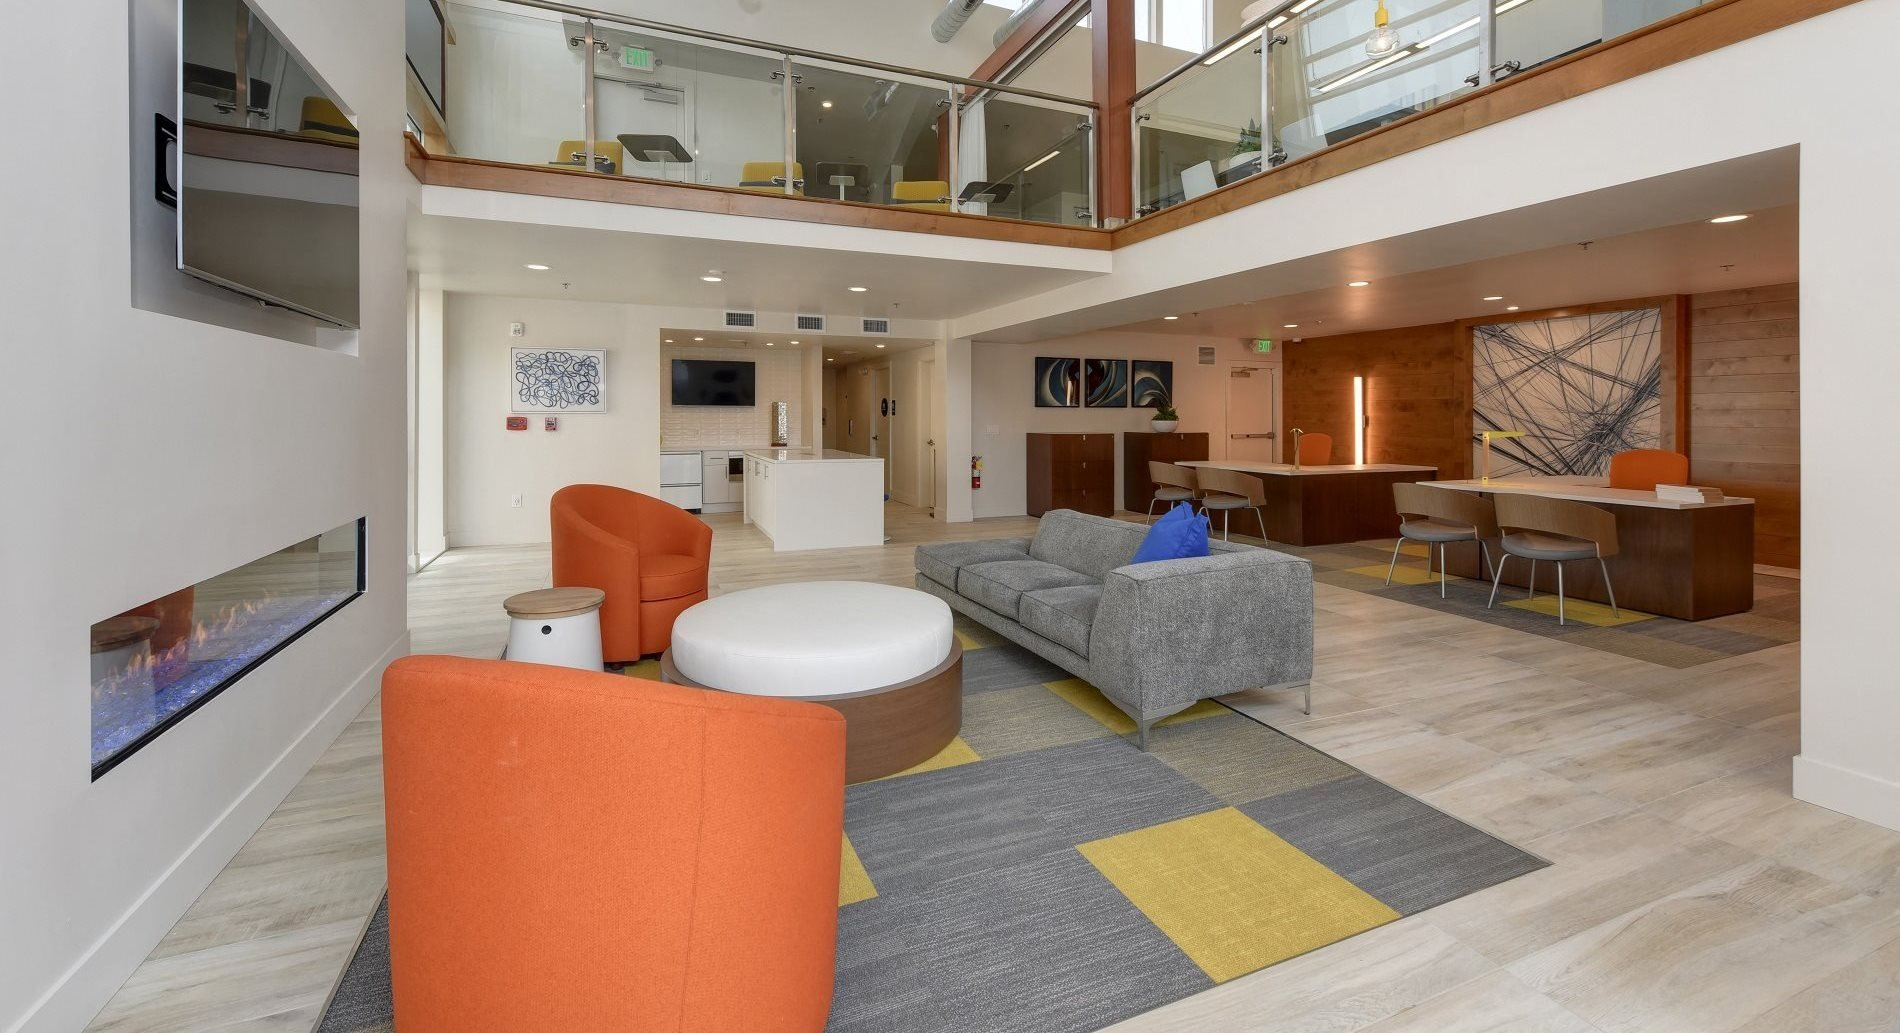 Clubhouse Lounge Area with Orange Seats, Gray Sofa, Flat Screen Television and Second Floor